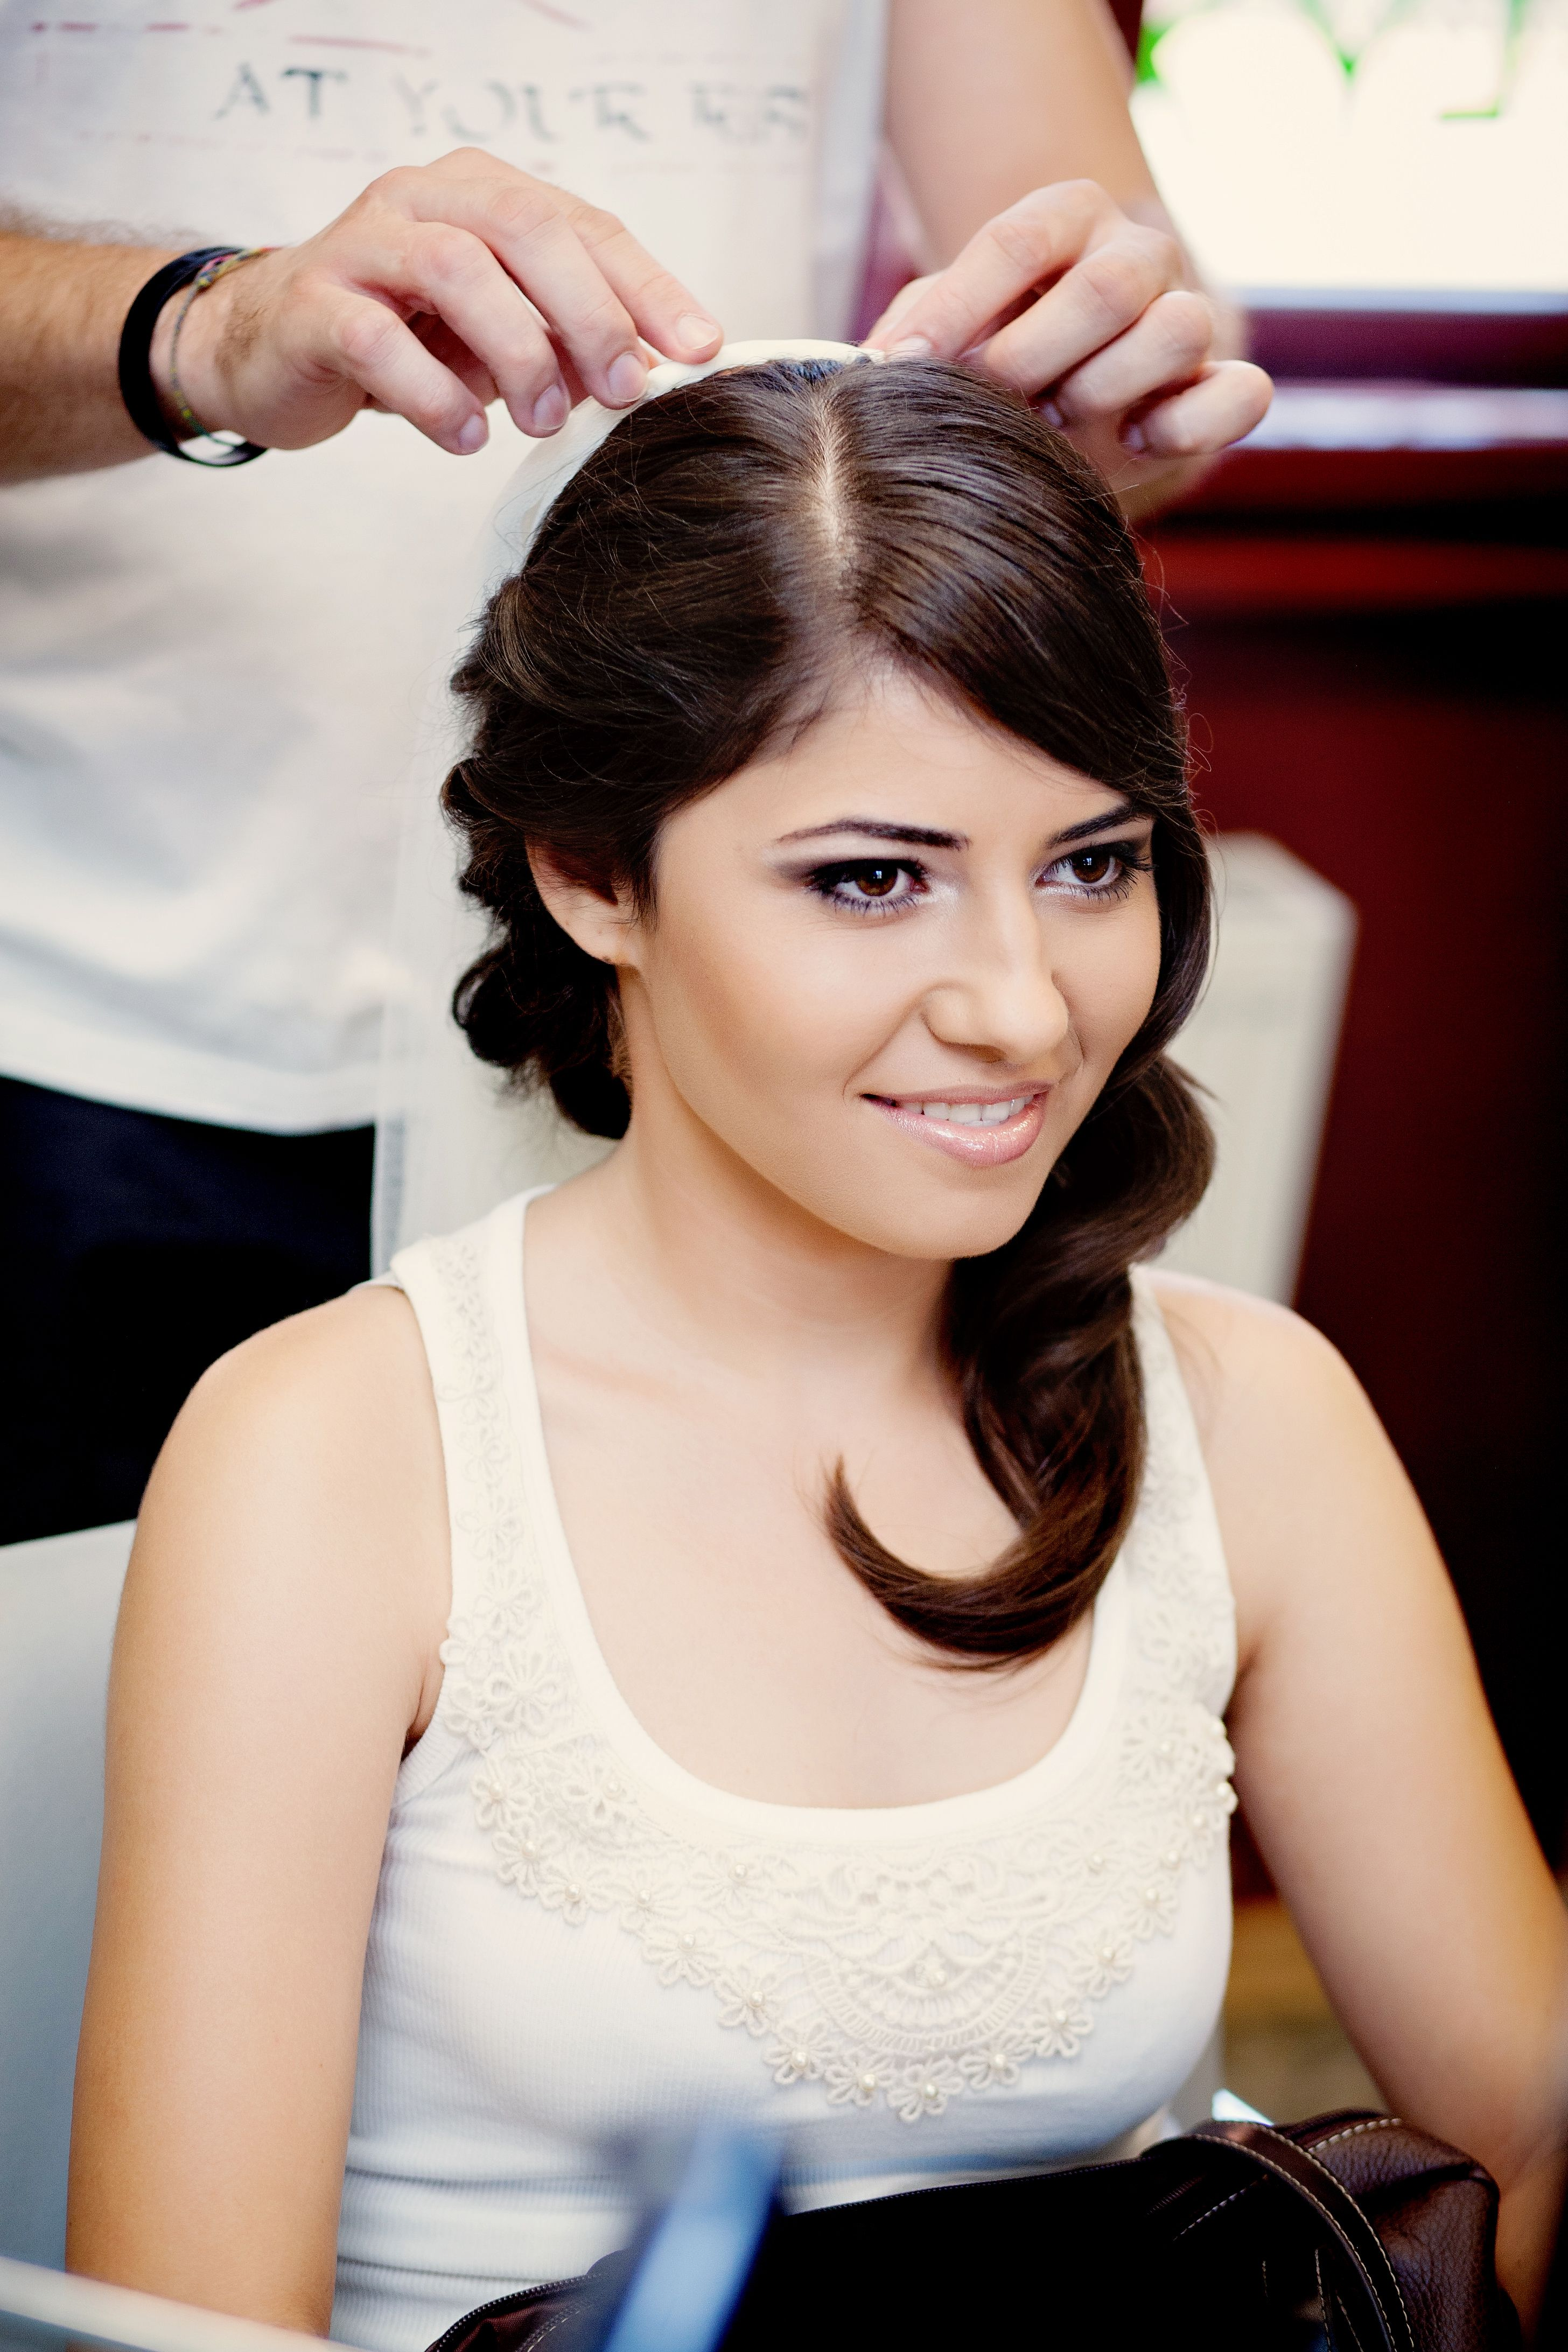 Hairstyles Prom prom hair wedding hairs girls hairstyles for prom beauti